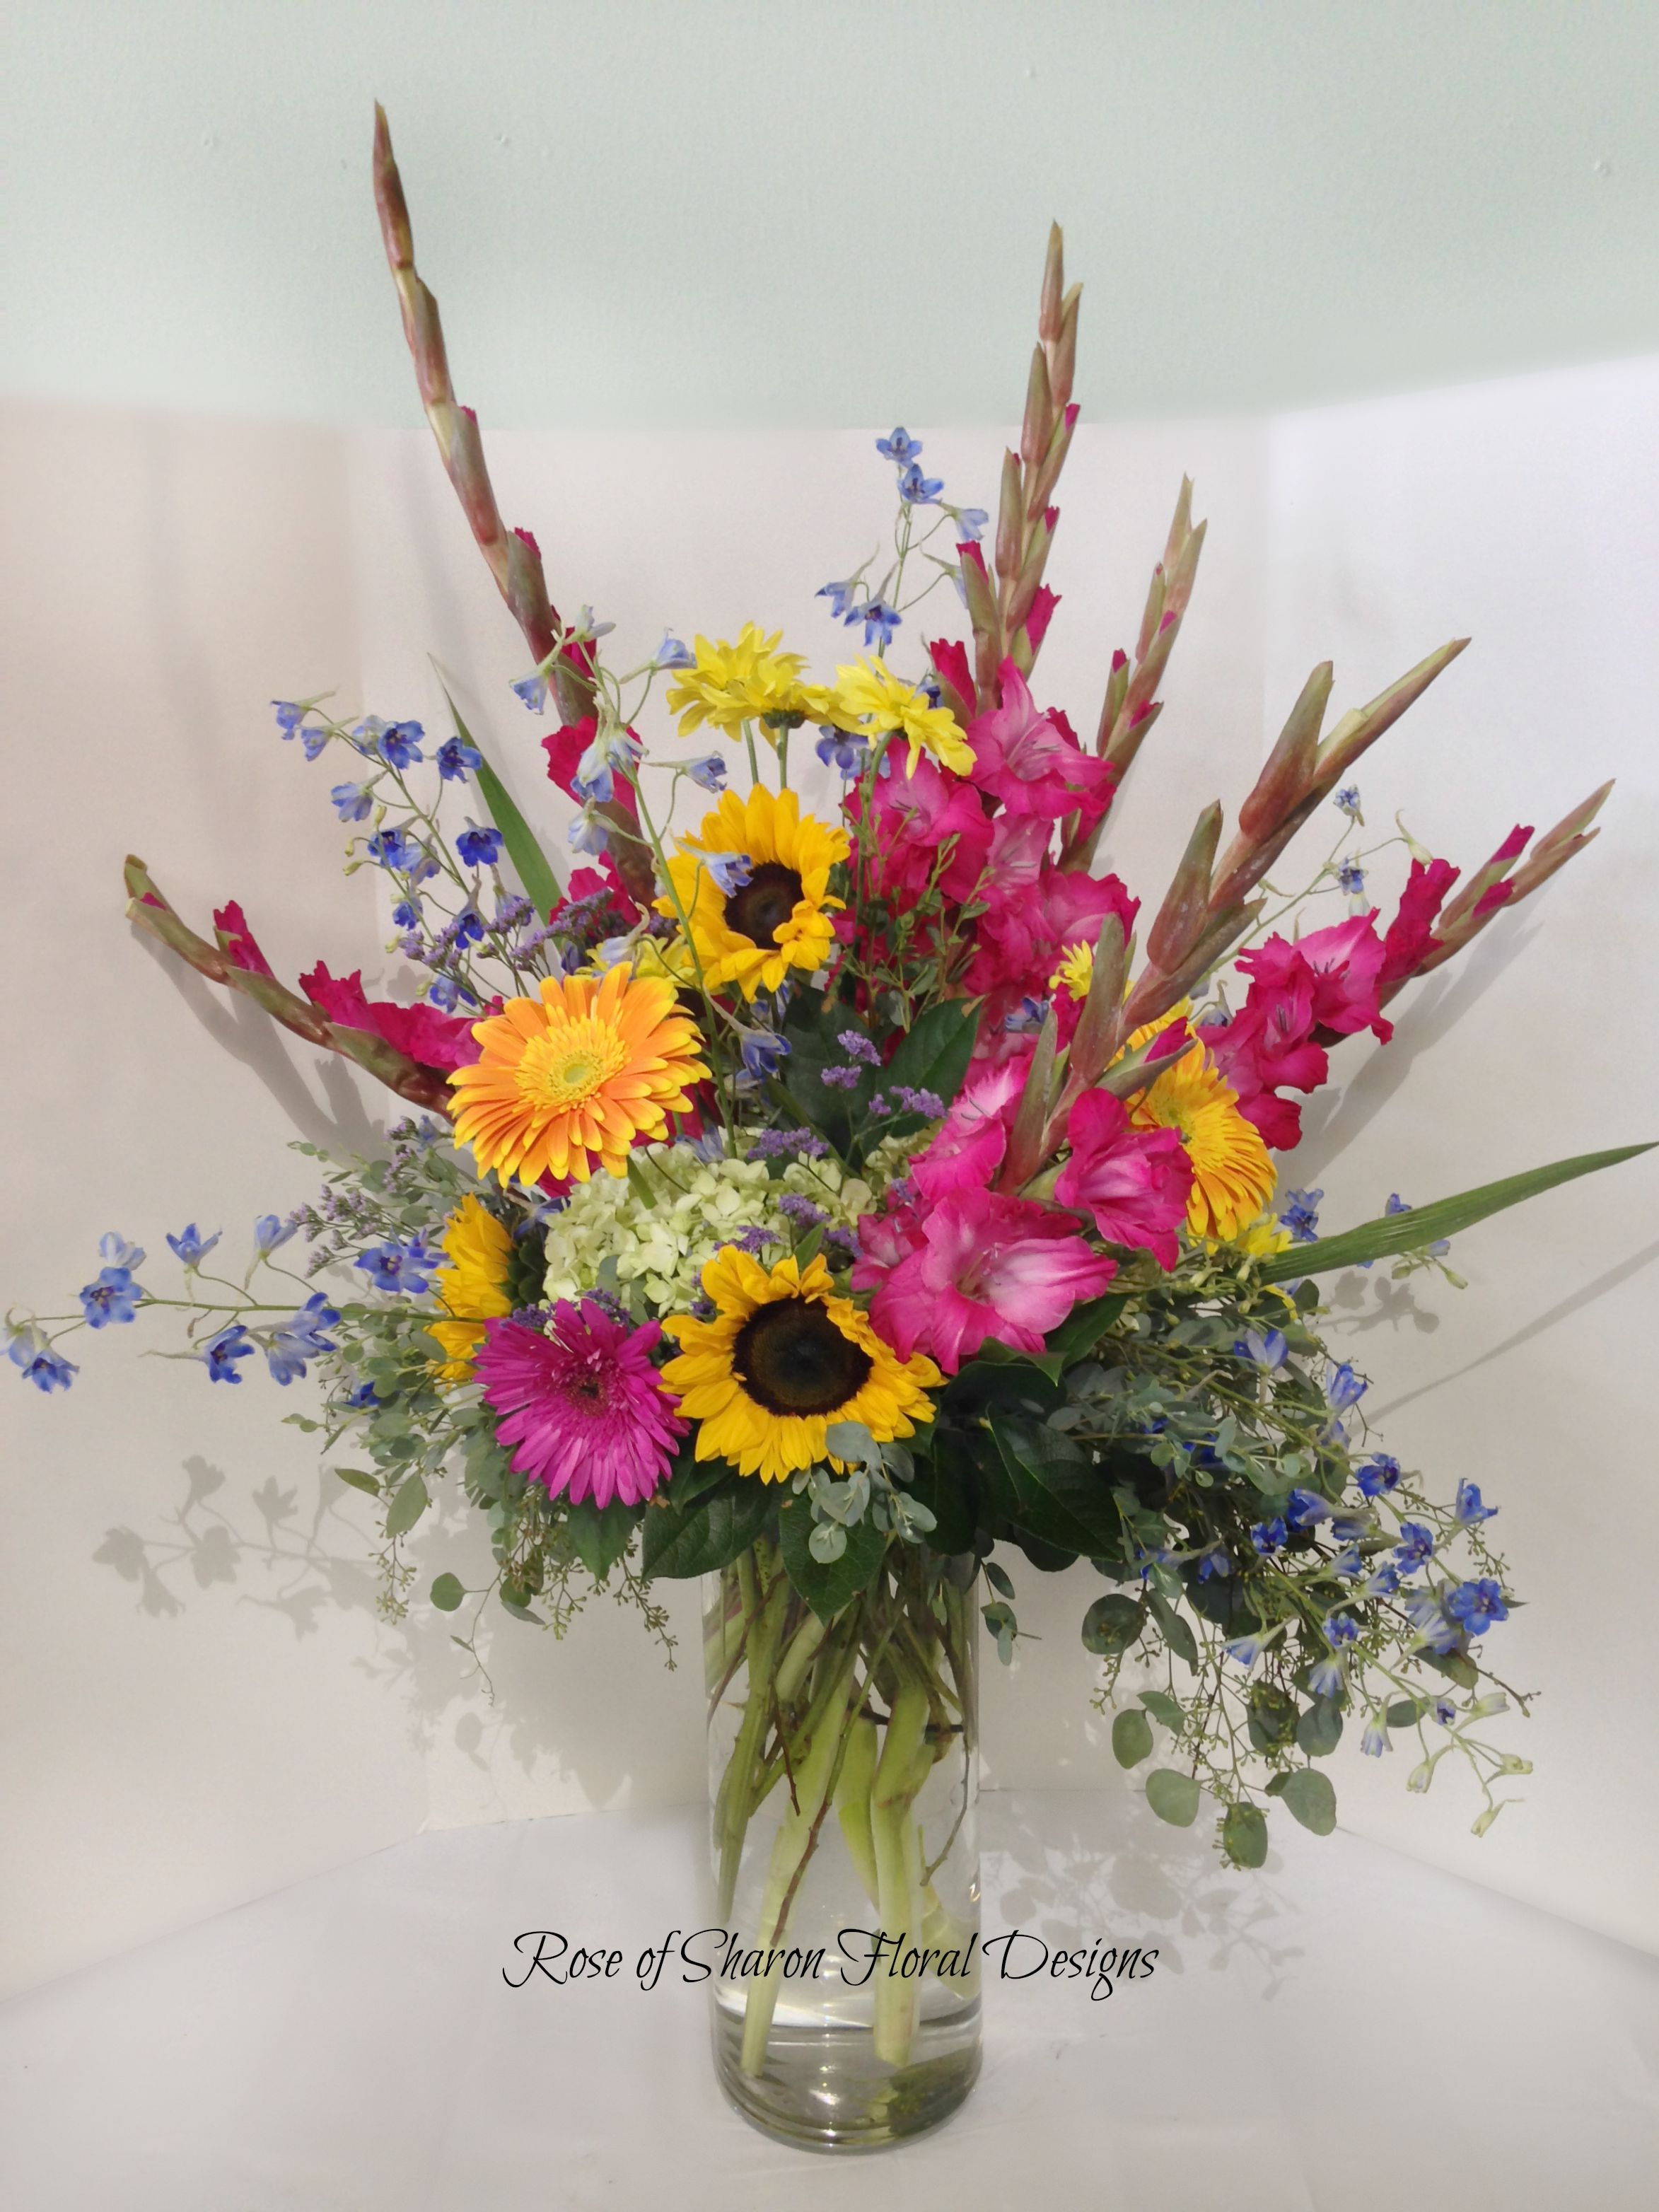 Rose Of Sharon Floral Designs Sunflower Daisy And Gladiolus